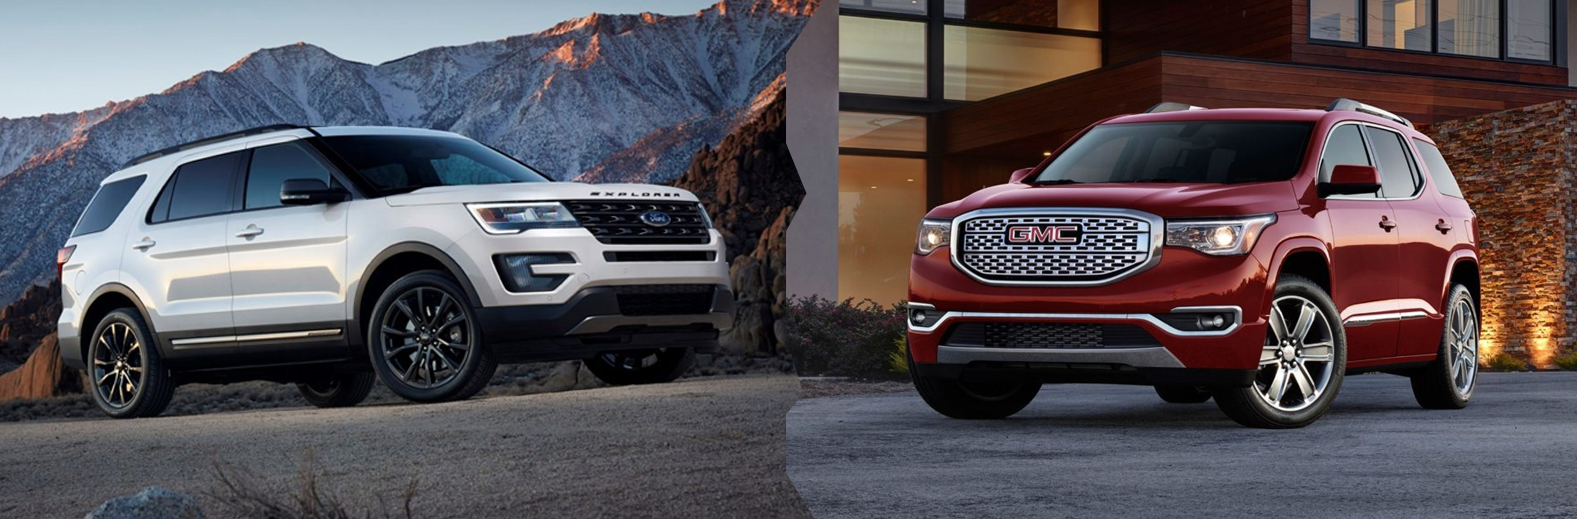 2017 Ford Explorer Vs Gmc Acadia